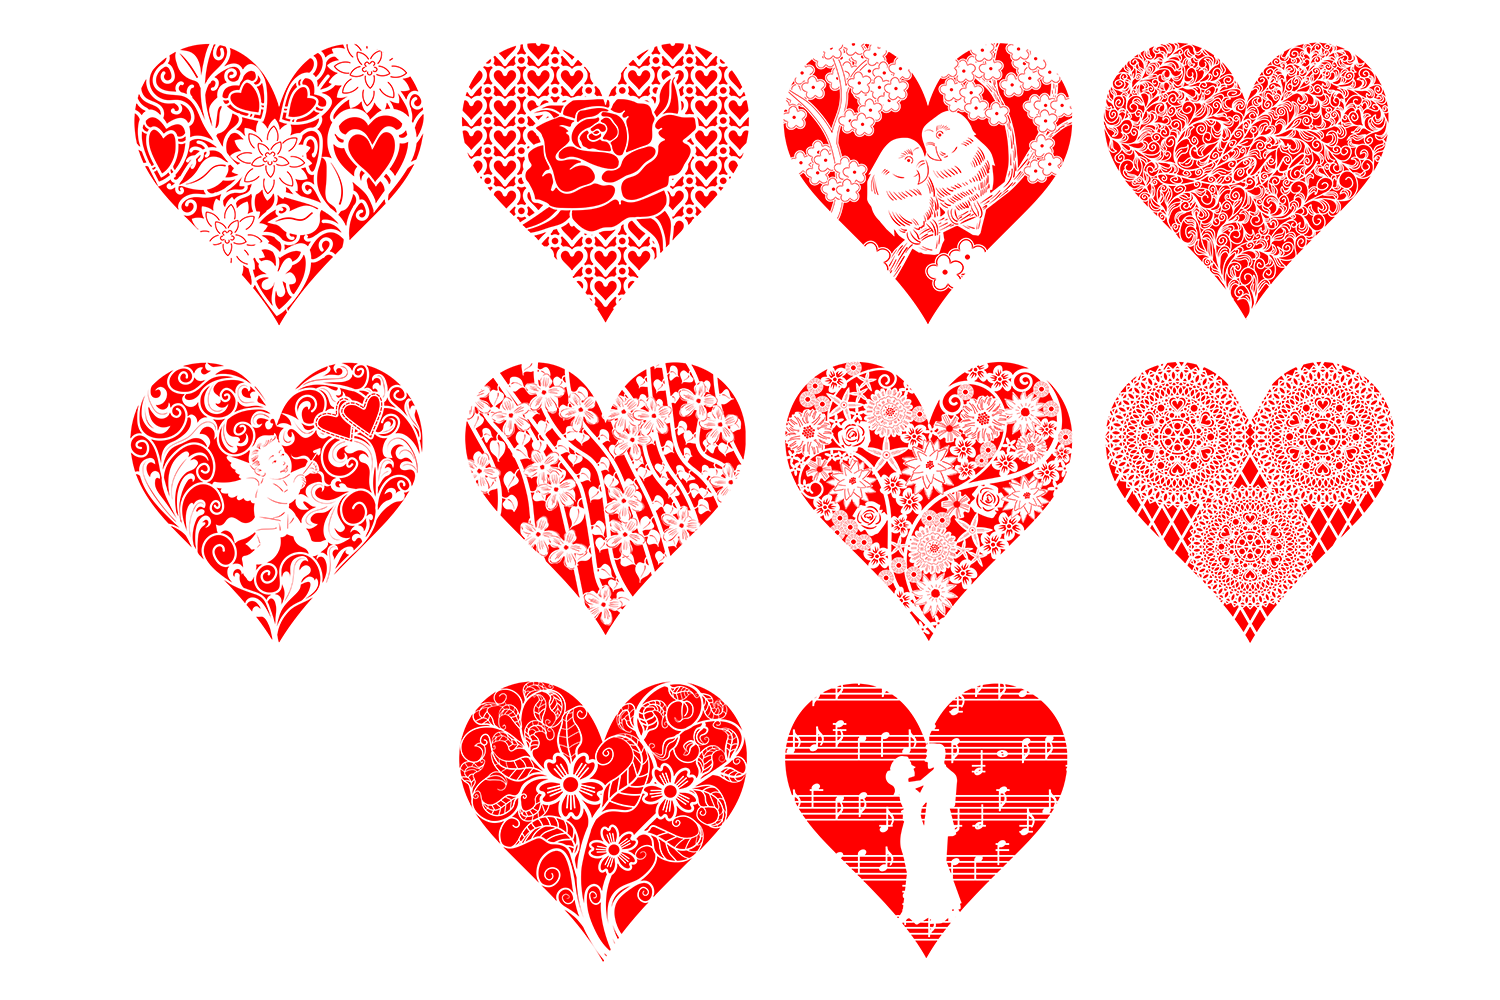 Ten Decorative Heart Cut Out Design 1 example image 2